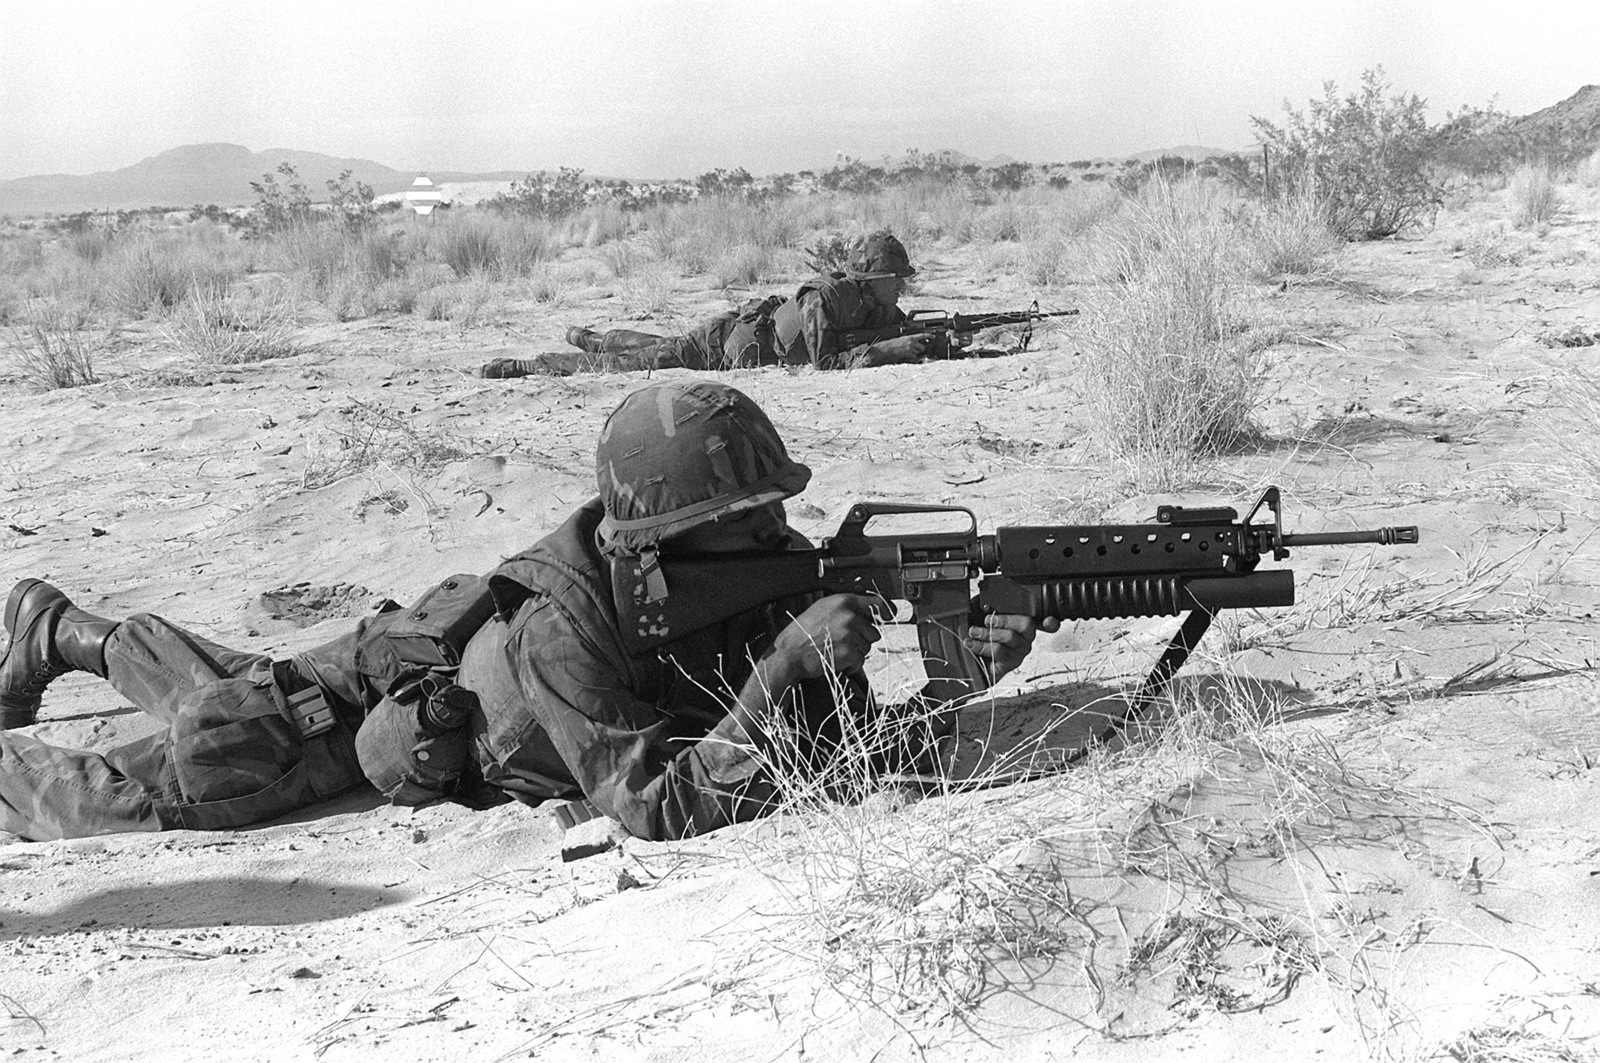 Two combat ready Marines are in the prone position with their M-16A1 rifles and an M-203 40mm grenade launcher attacked to the first rifle. The Marines are approaching their objective during Operation CAX-1-2-82